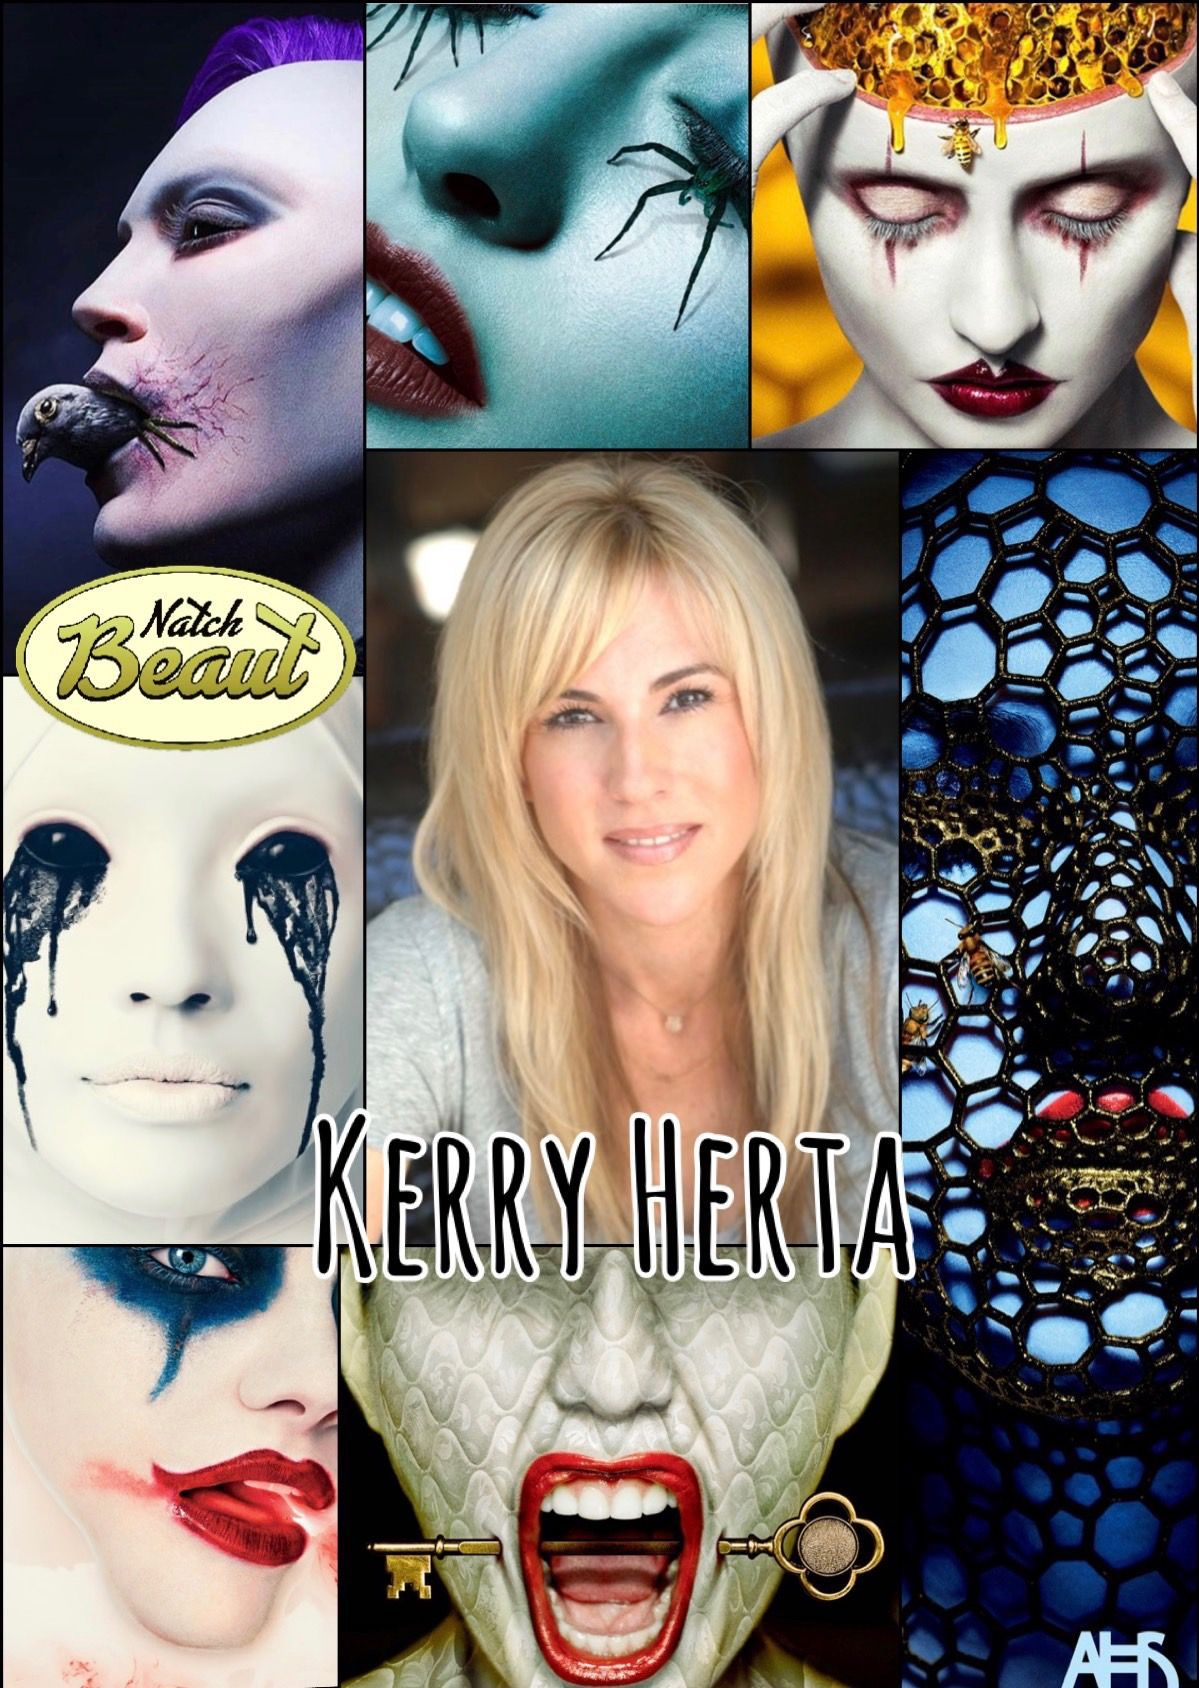 Special effects makeup artist Kerry Herta and some of her